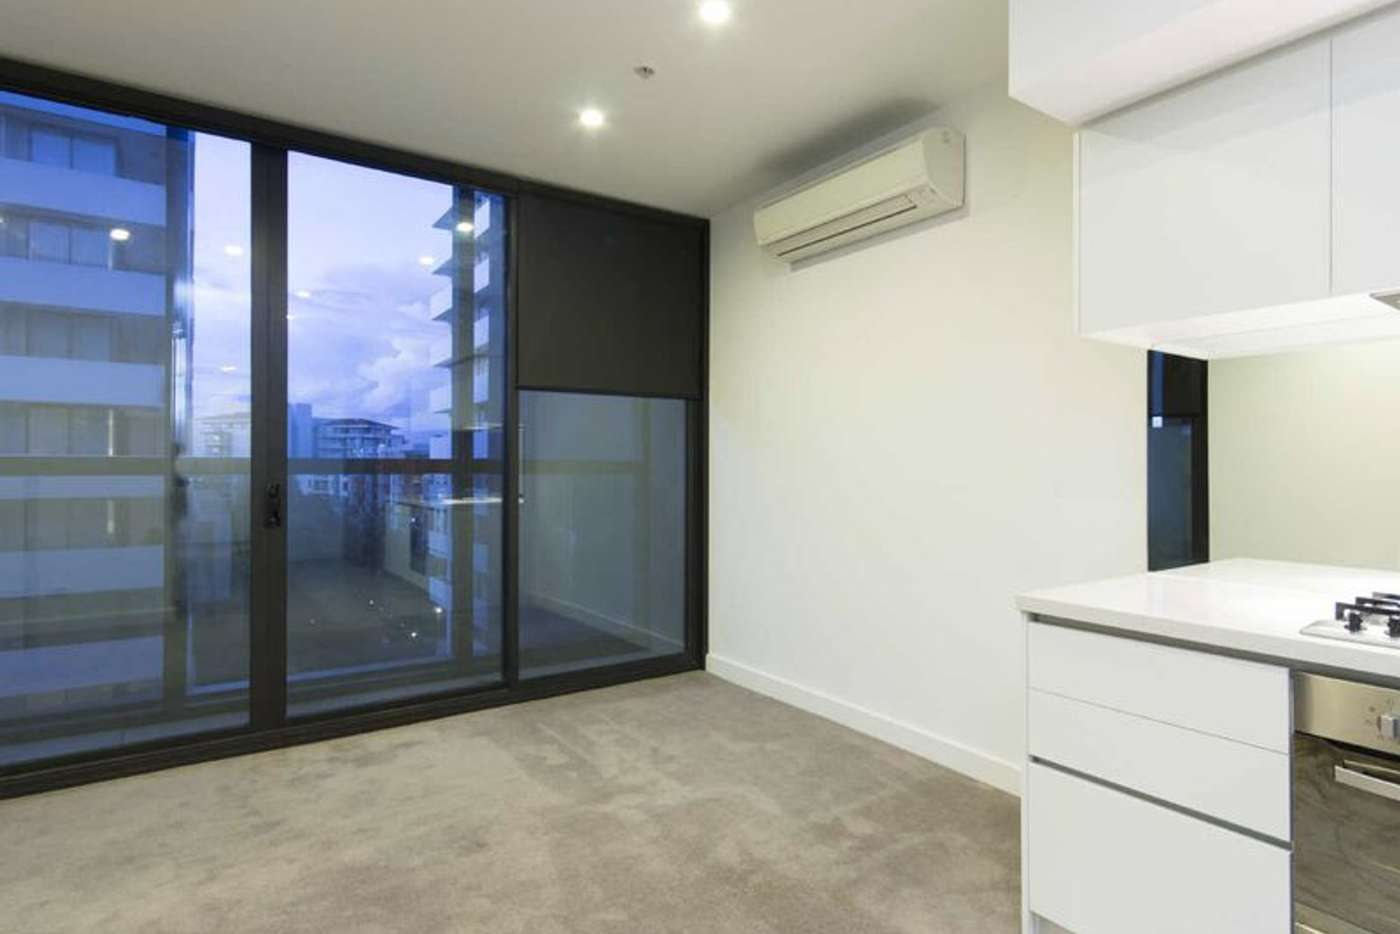 Main view of Homely apartment listing, 310/35 Malcolm Street, South Yarra VIC 3141